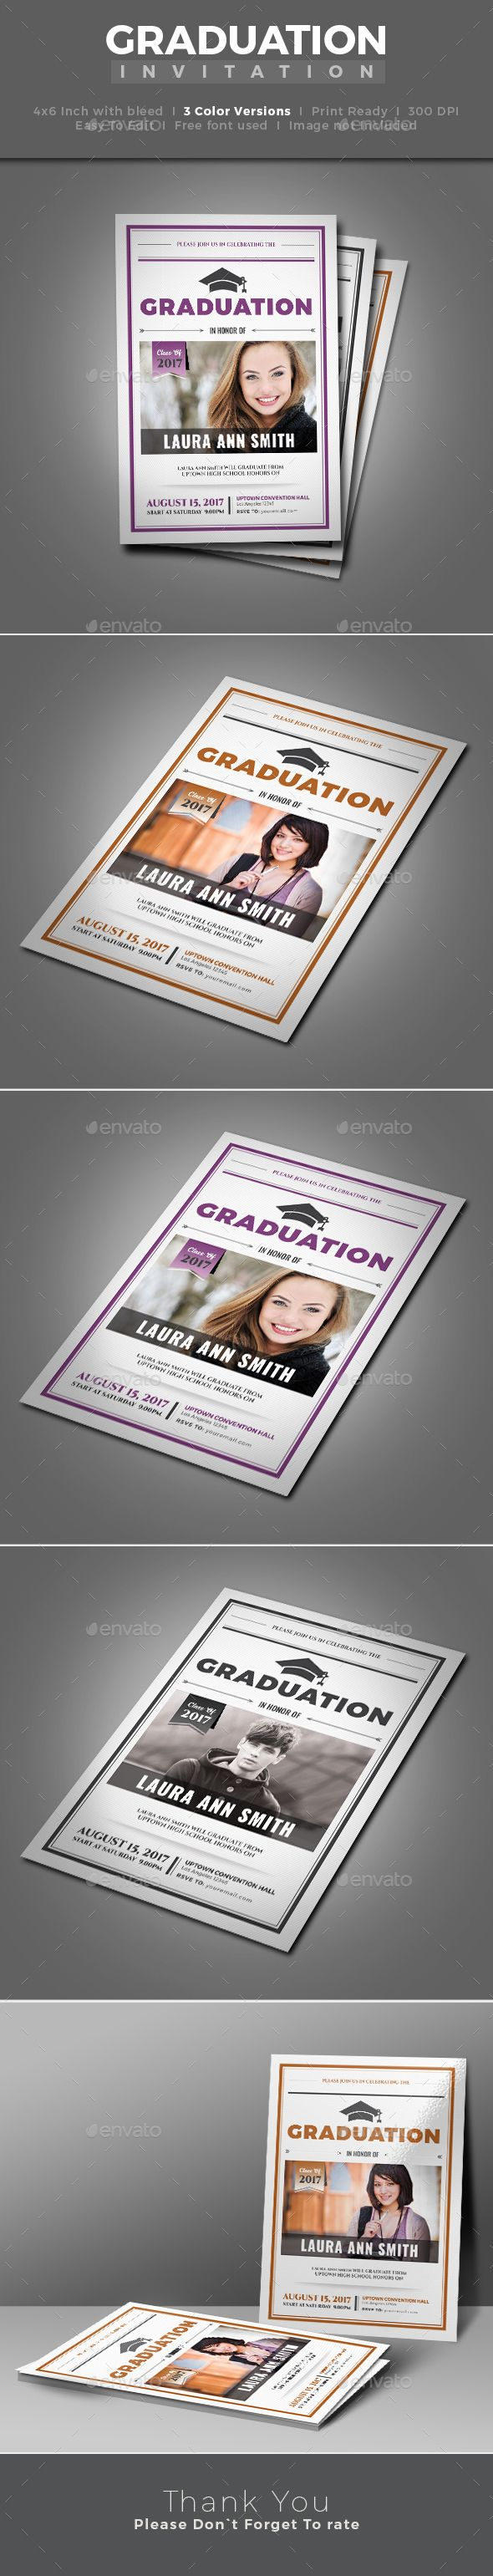 business event invitation templates%0A Graduation Invitation